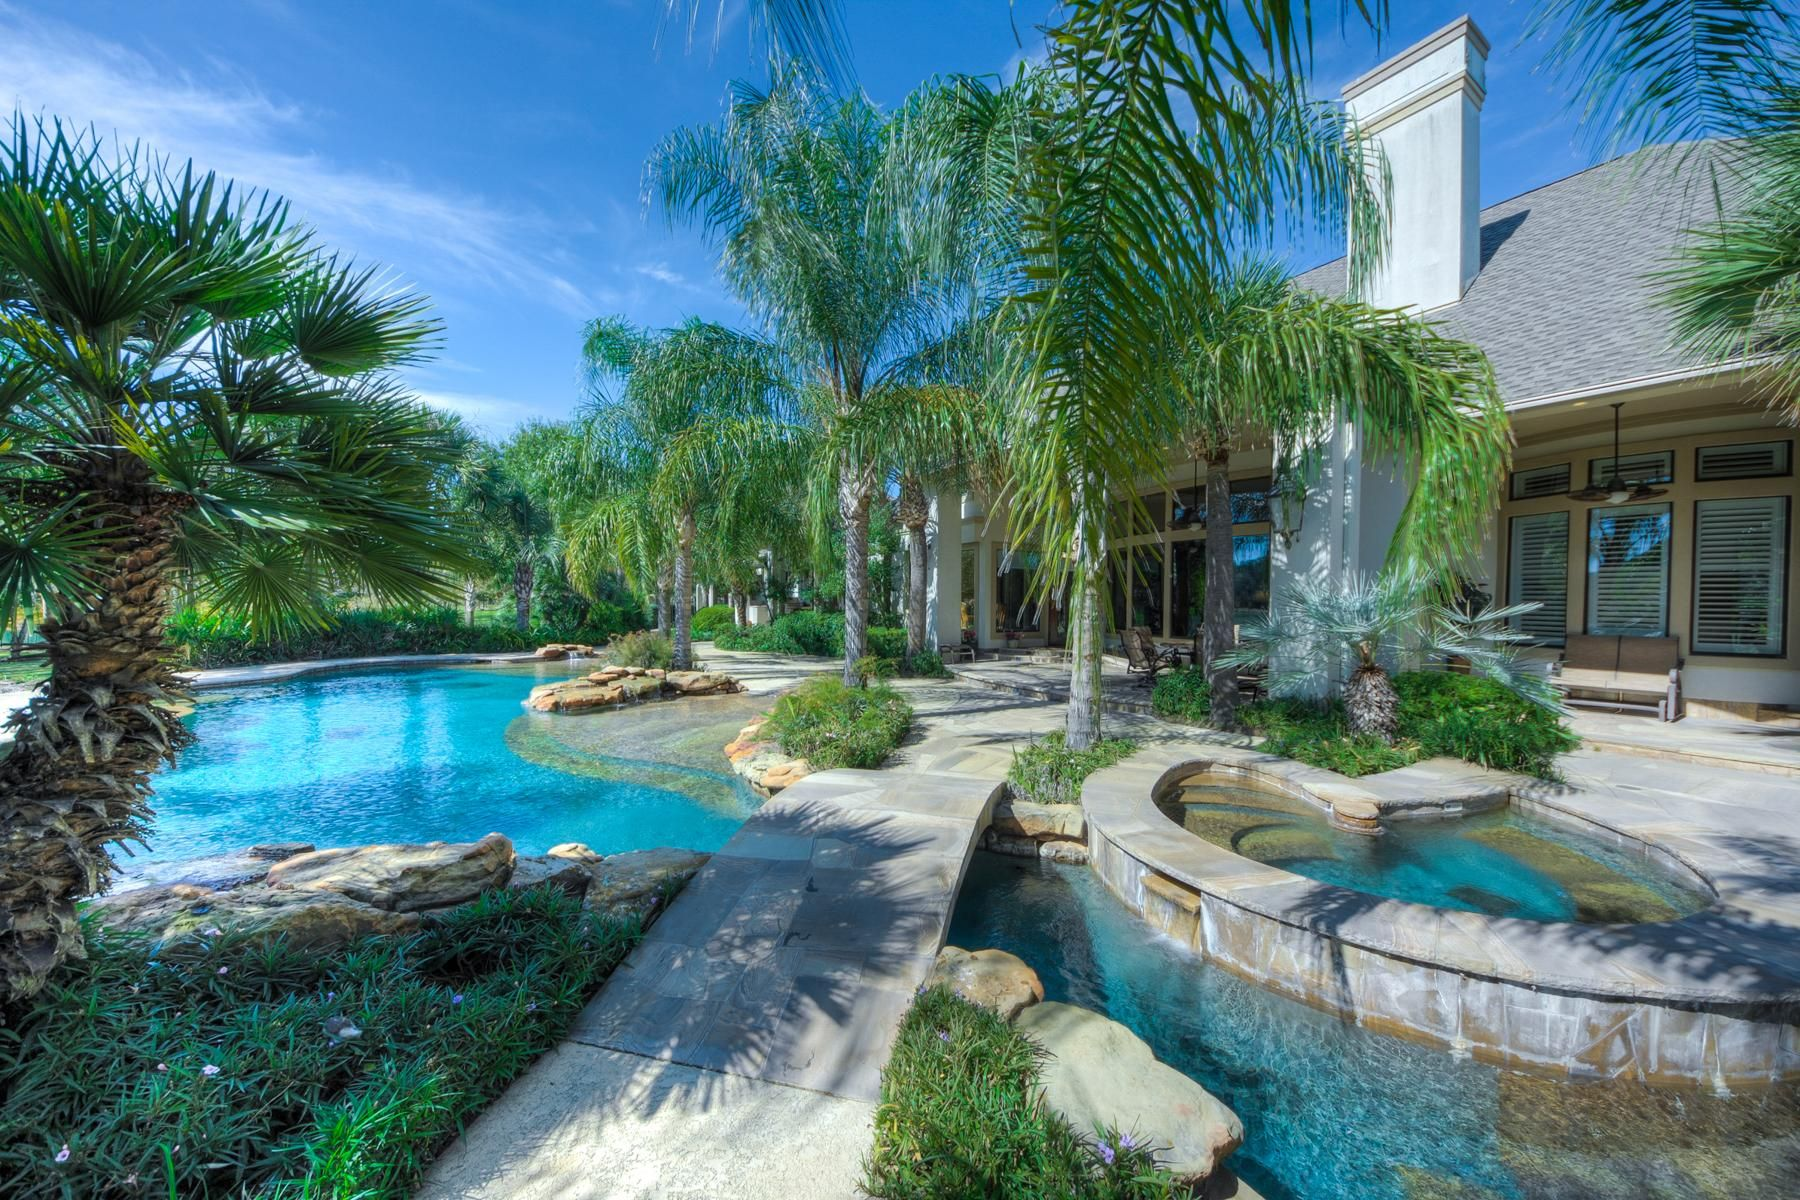 homes for rent in montgomery al with pool